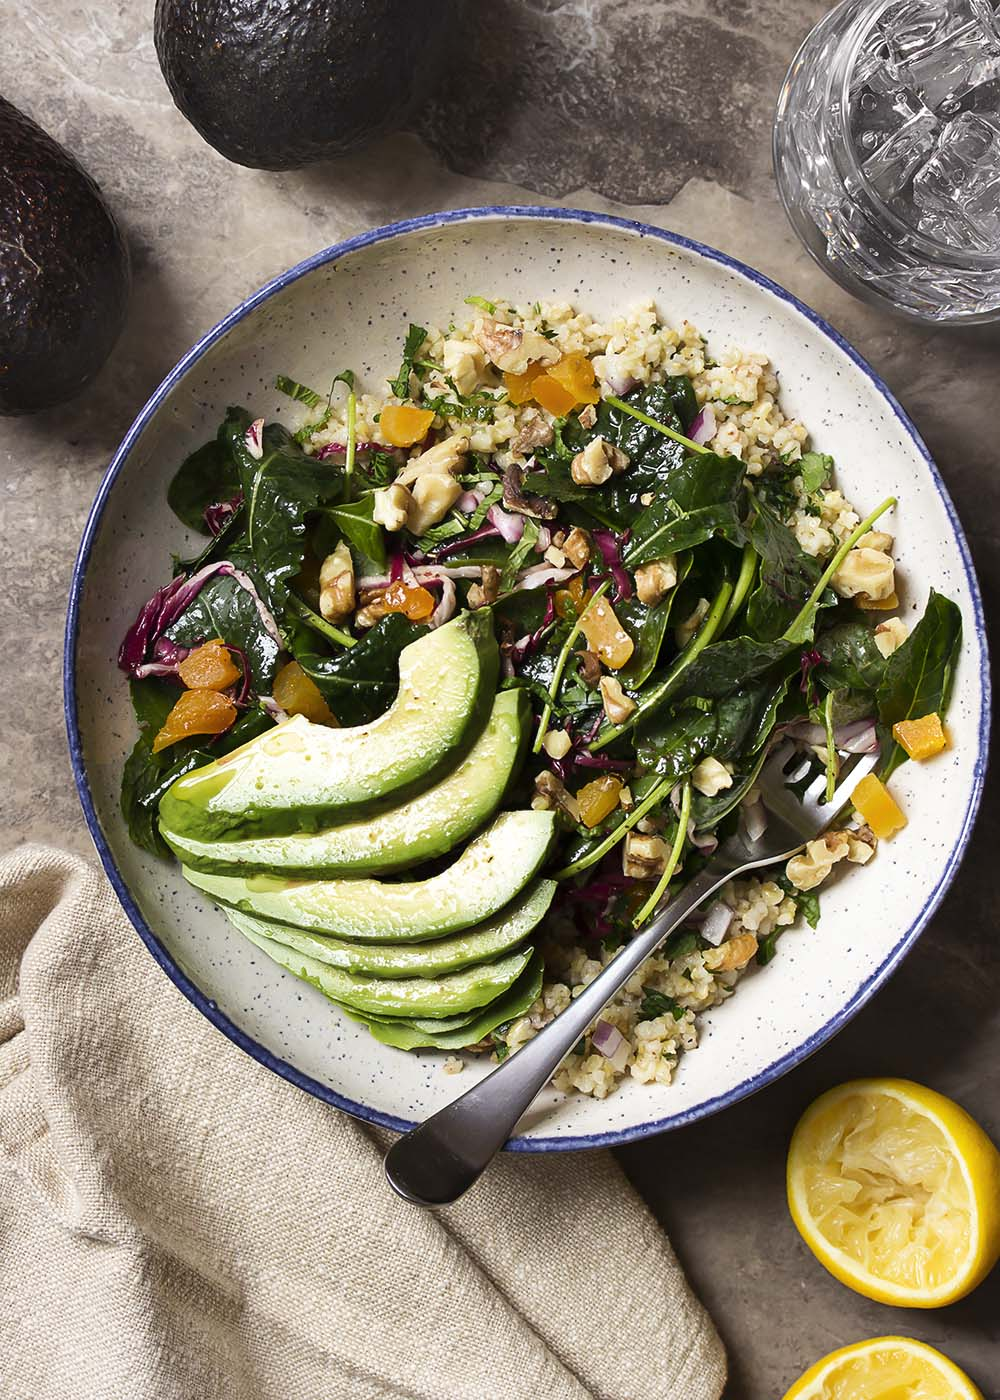 Top view of kale and freekeh salad buddha bowl topped with avocado, walnuts, and dried apricots.